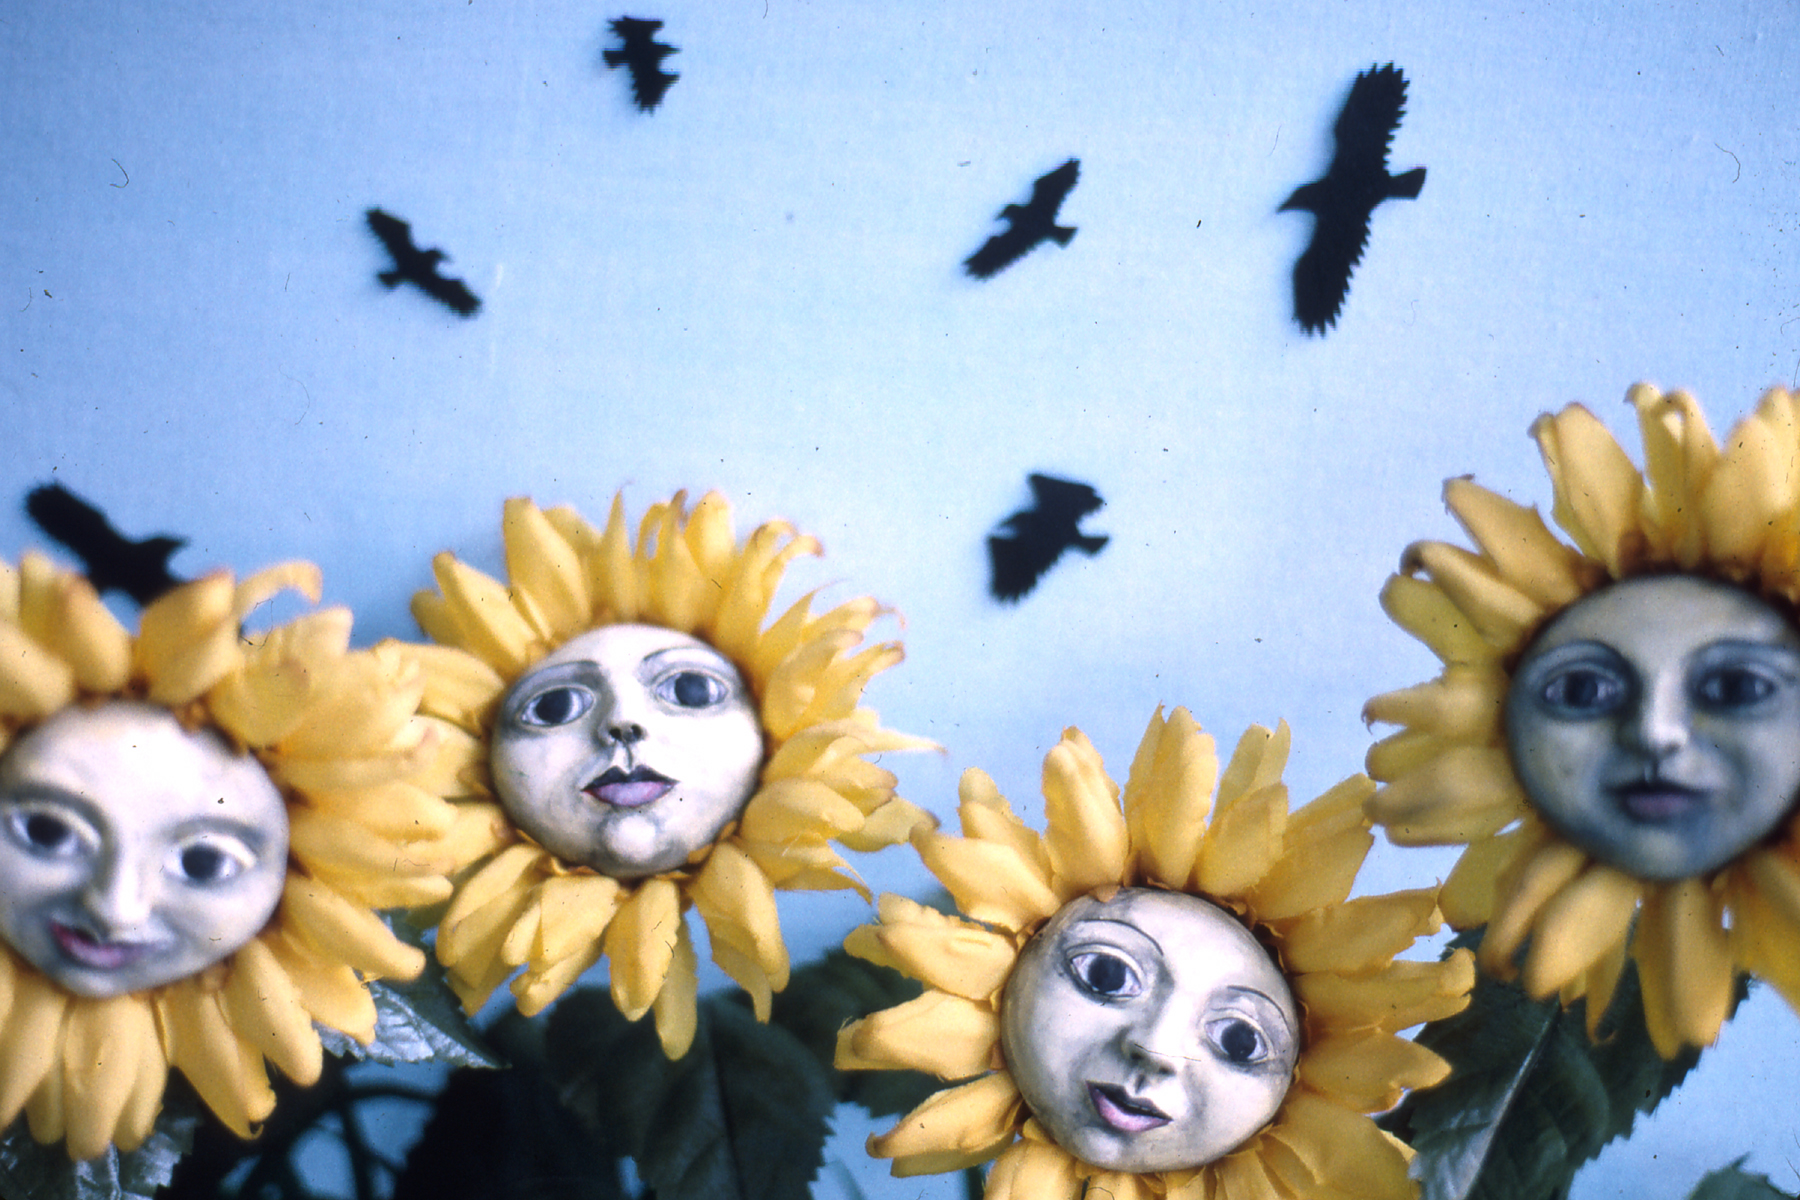 bs_sunflowers4x6_blowup.jpg